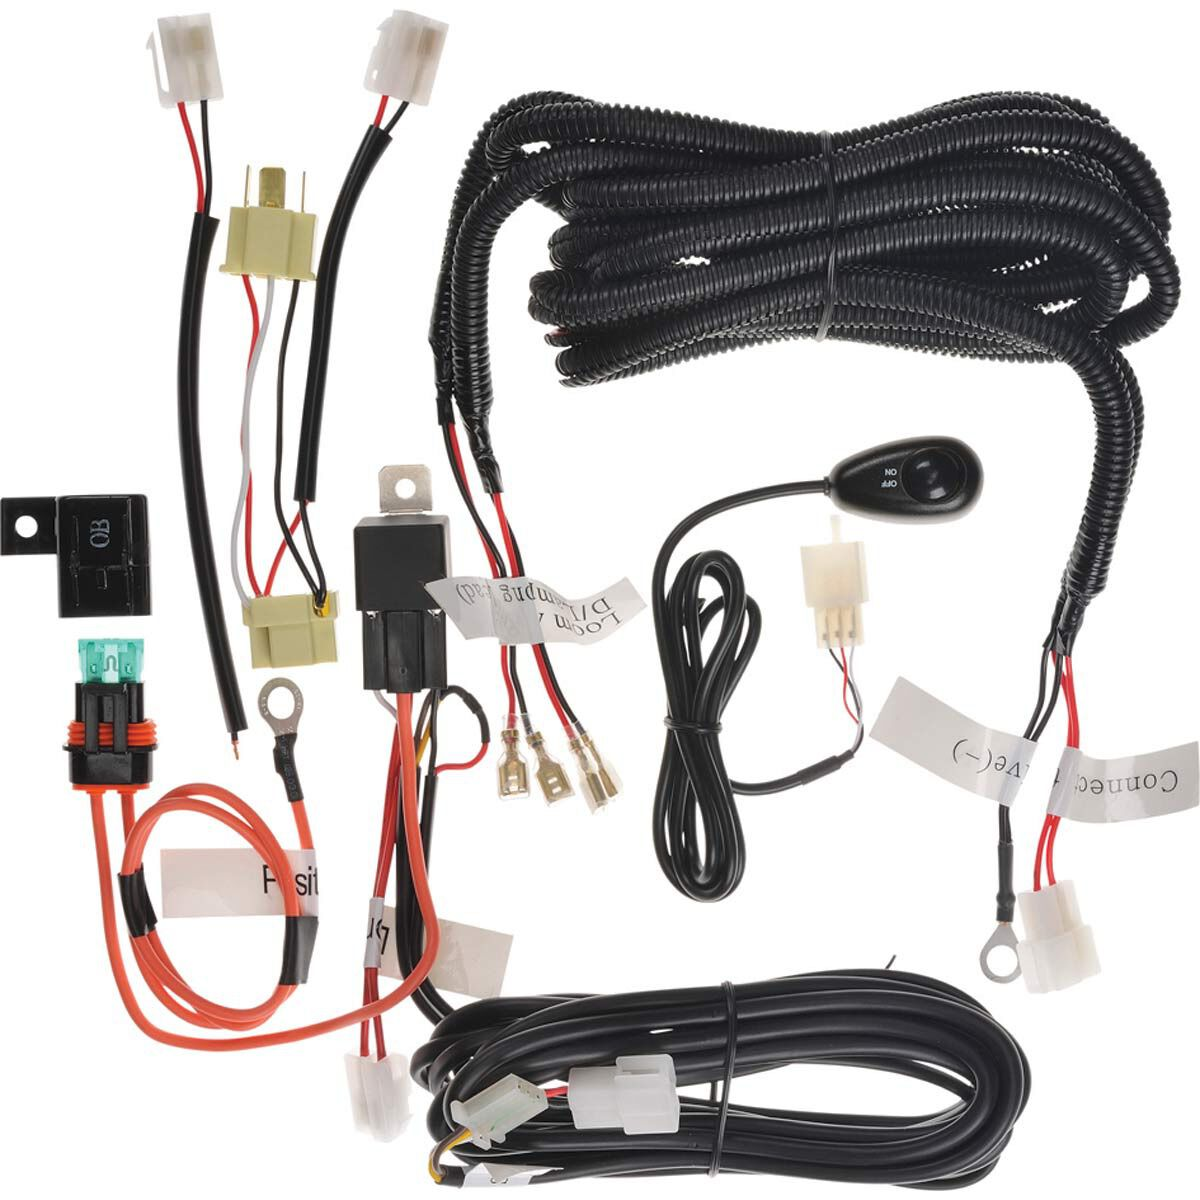 Spotlight Wiring Harness Hilux Wire Diagrams Diagram For Driving Lights Light Supercheap Auto Scaau Hi Res